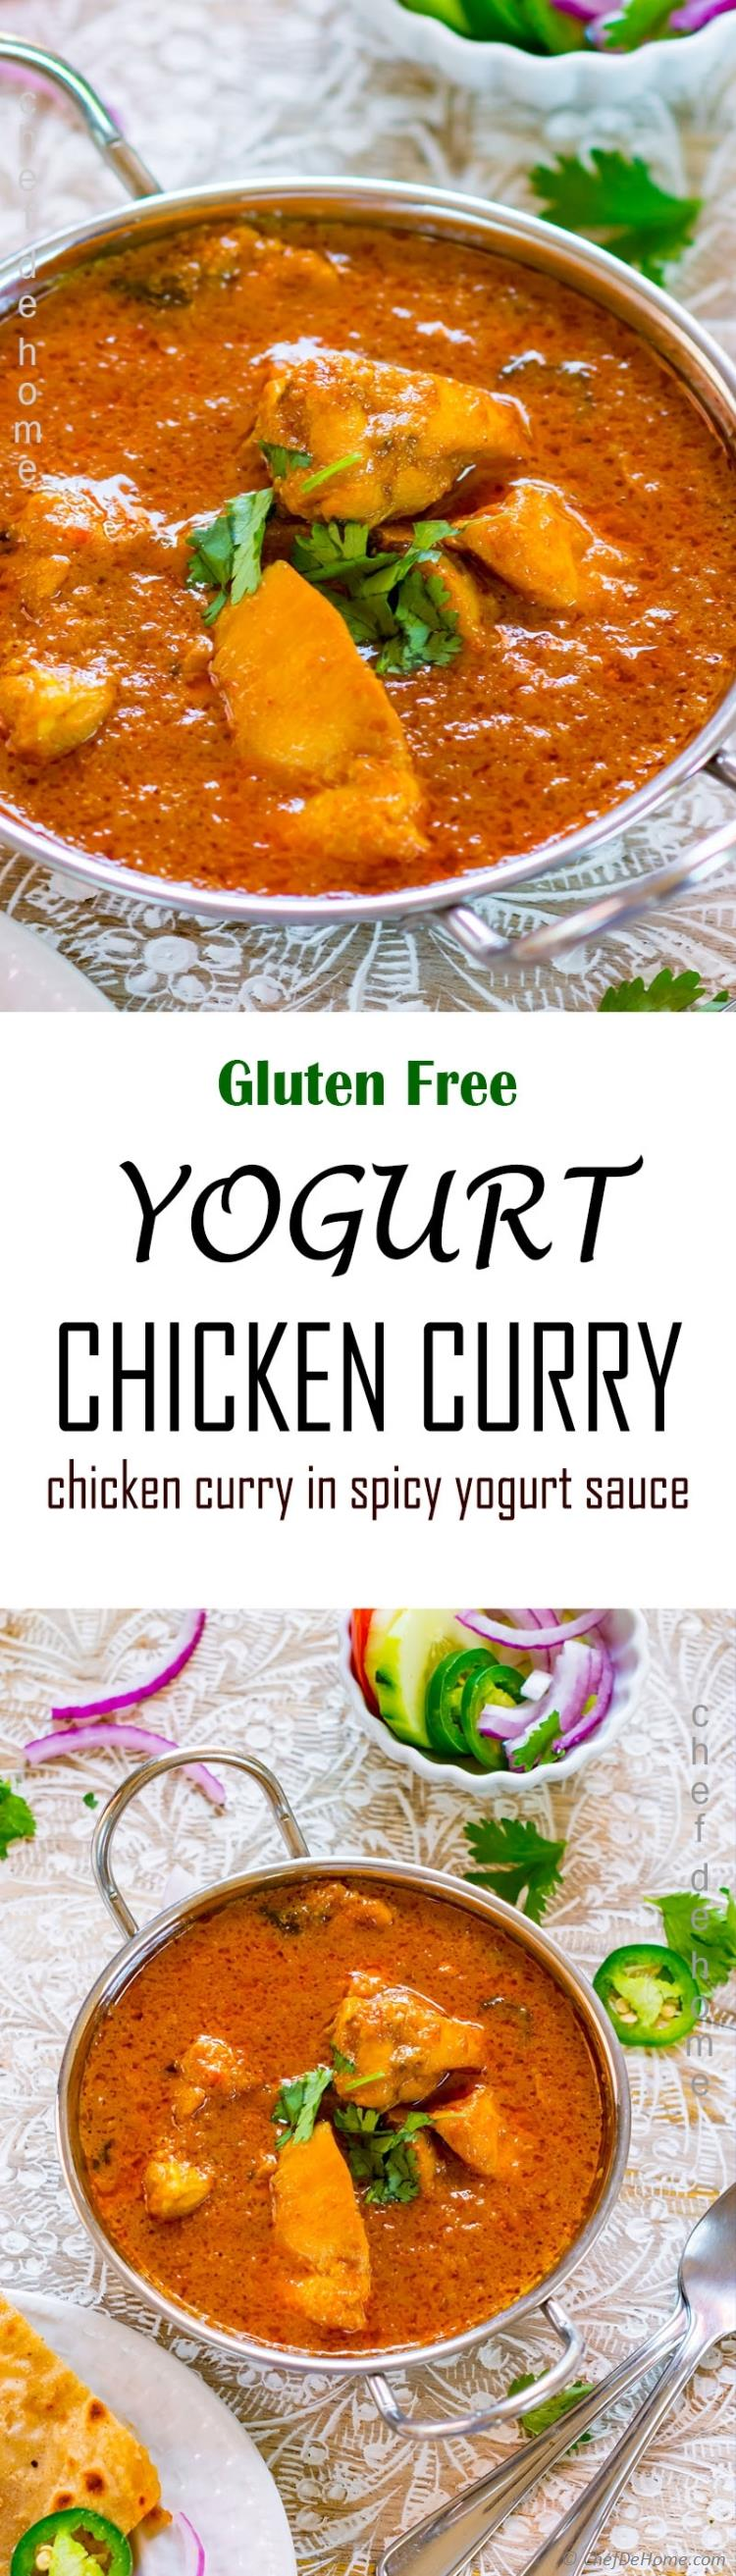 Yogurt chicken curry recipe chefdehome easy indian chicken yogurt curry forumfinder Image collections